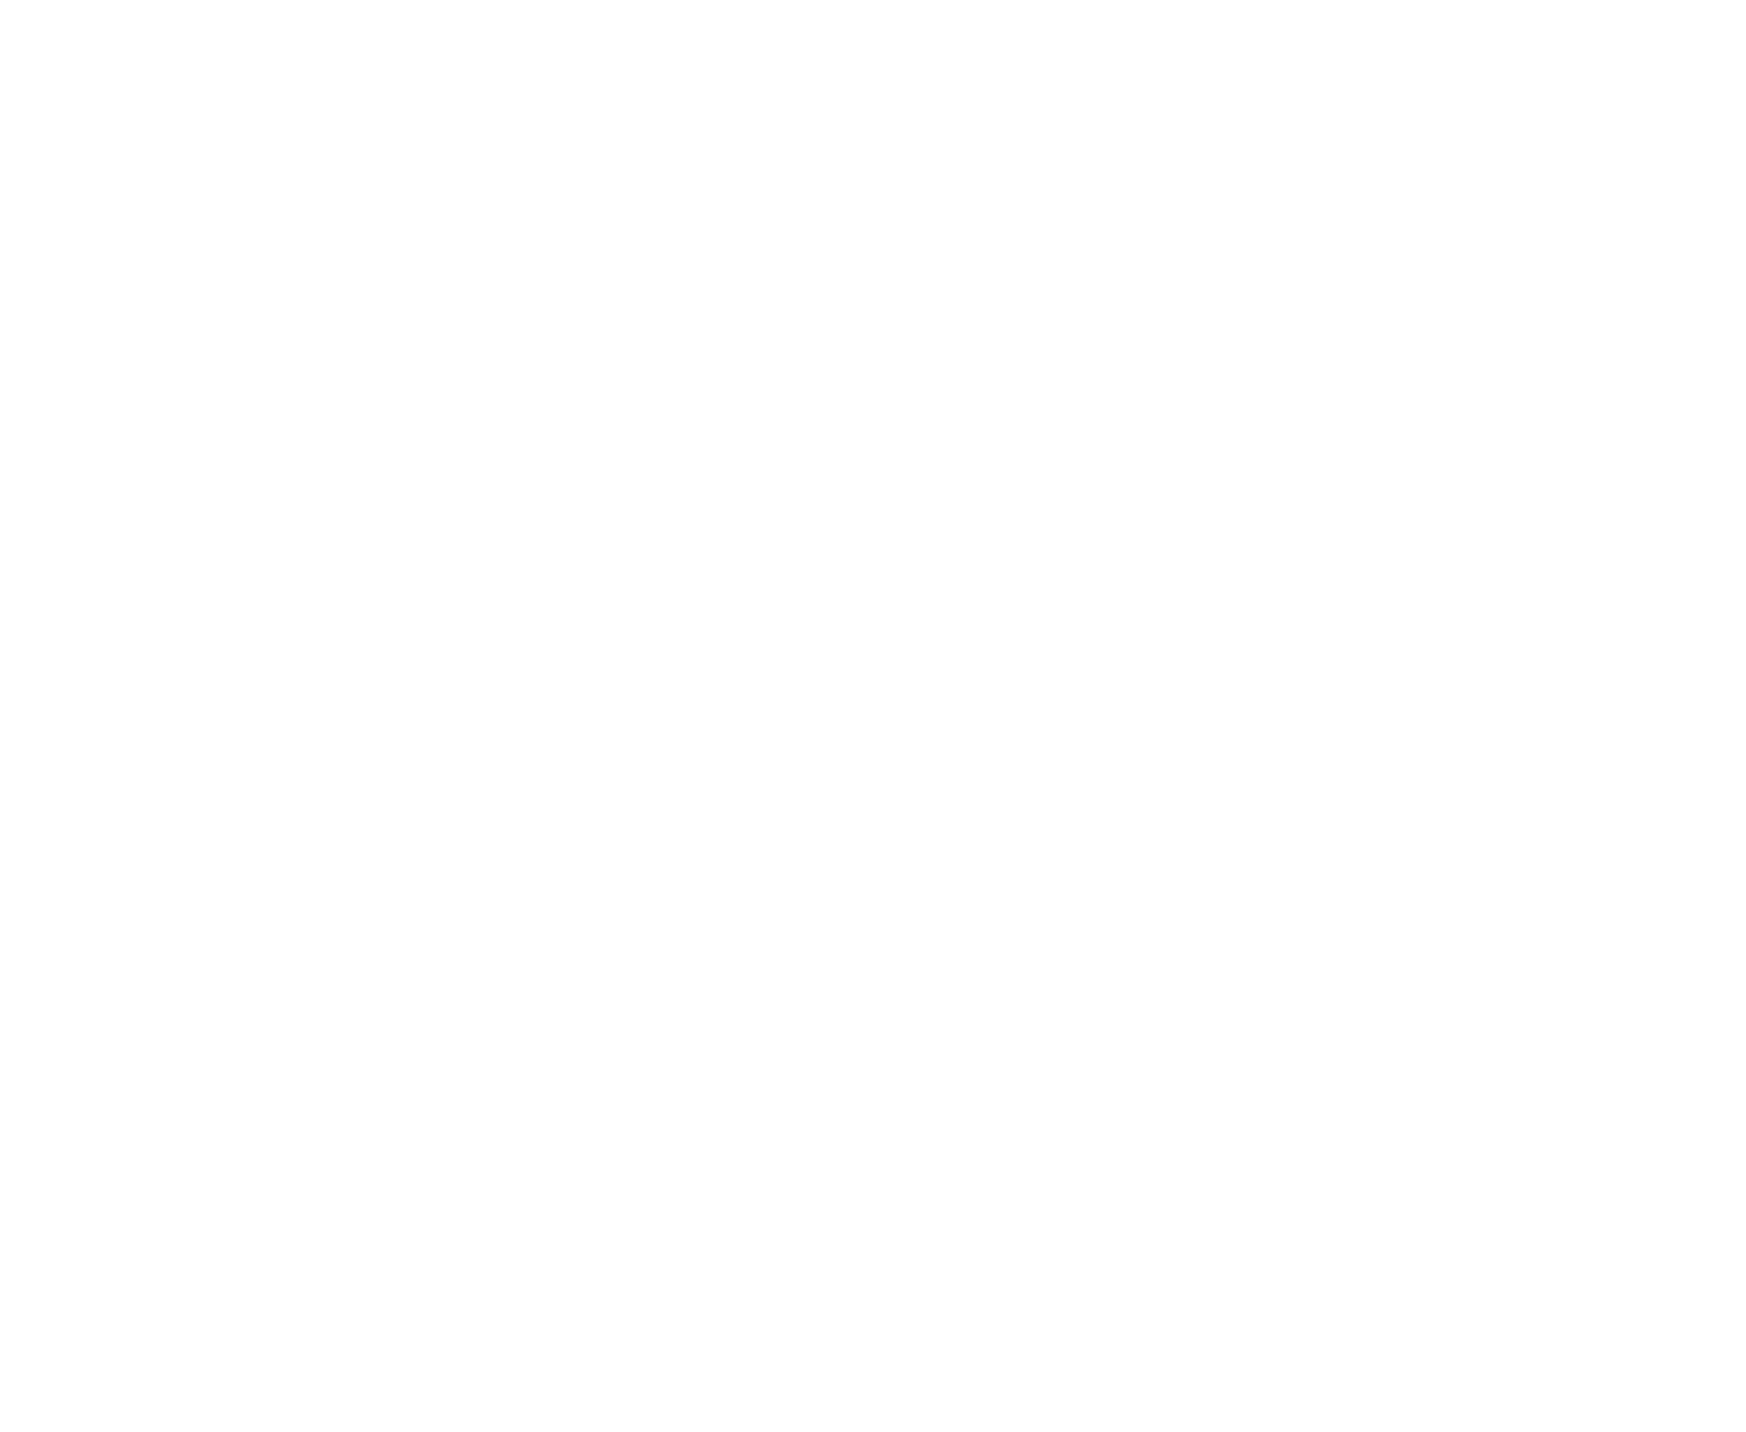 European Conference